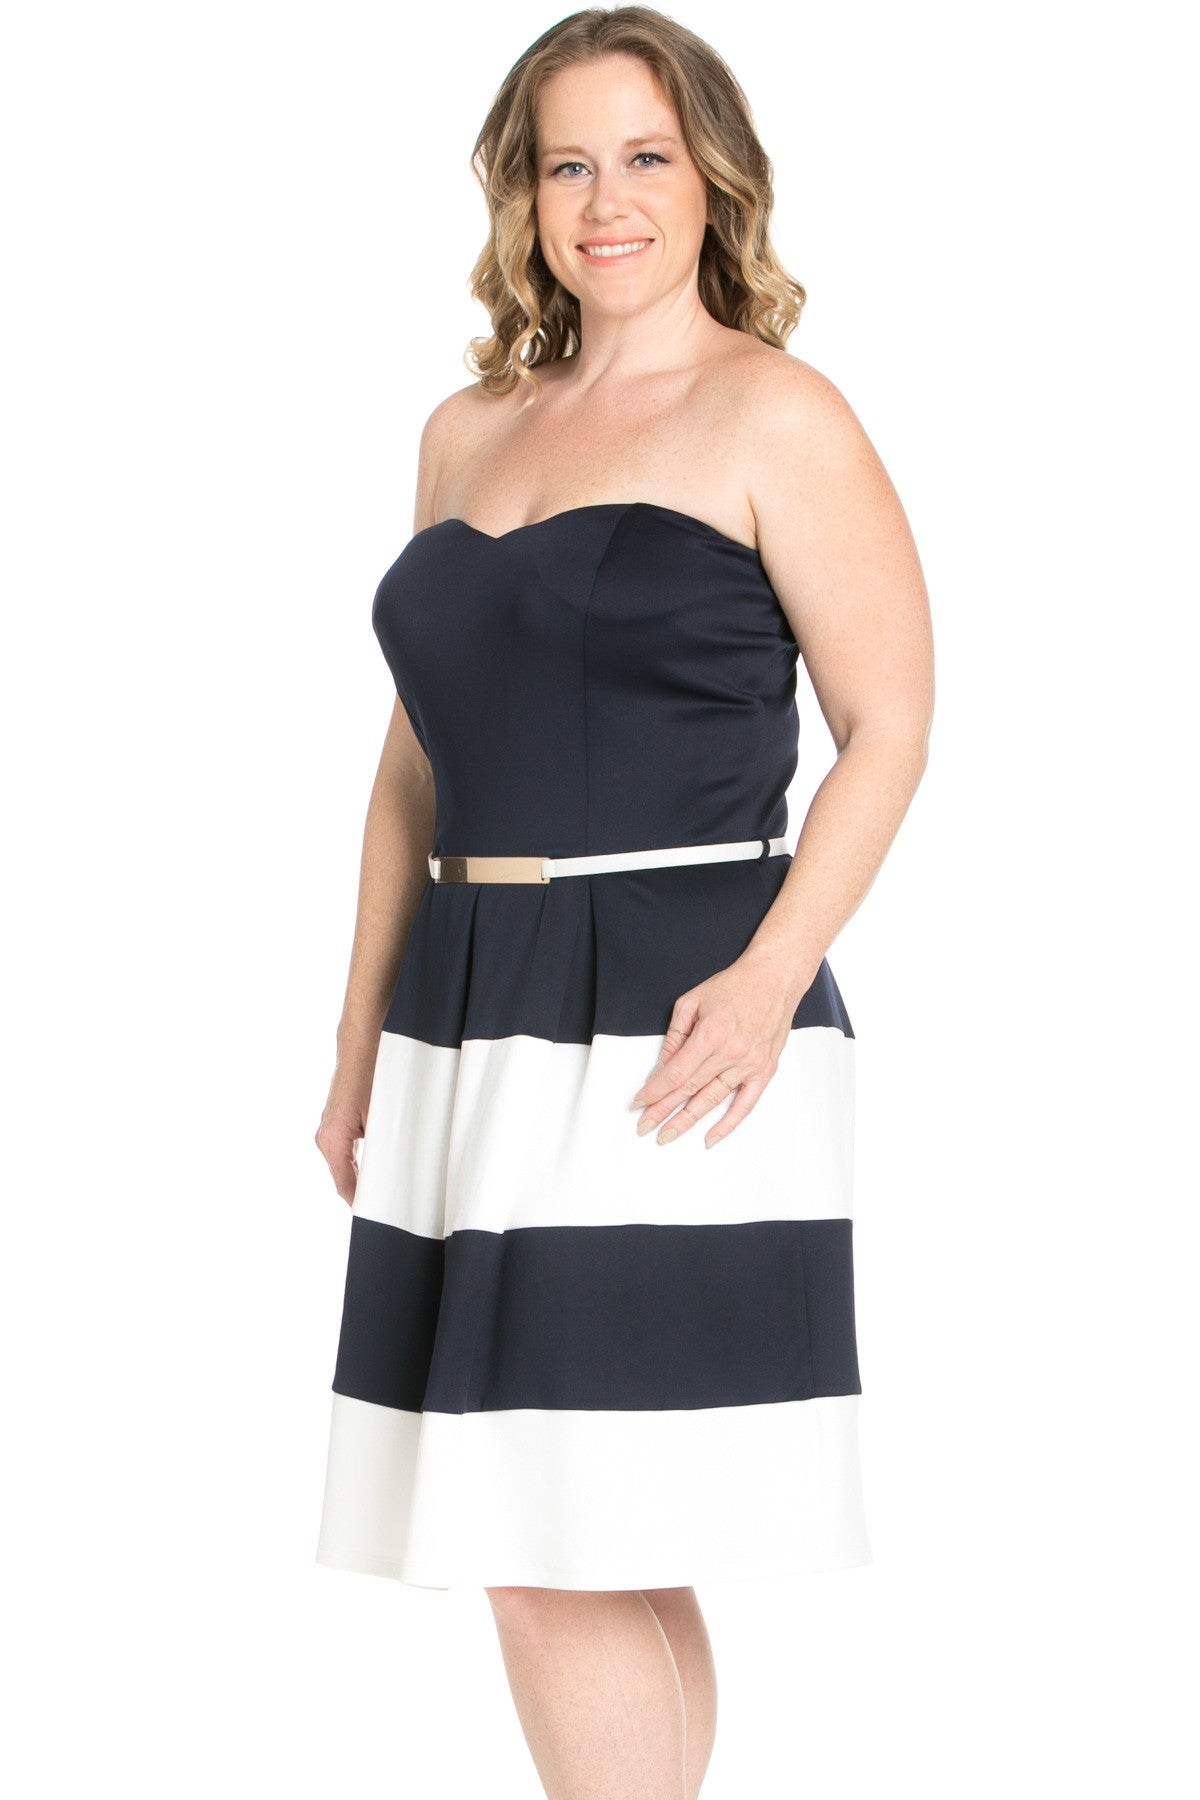 Sweetheart Color Block in Navy Tube Dress with Belt - Dresses - My Yuccie - 2